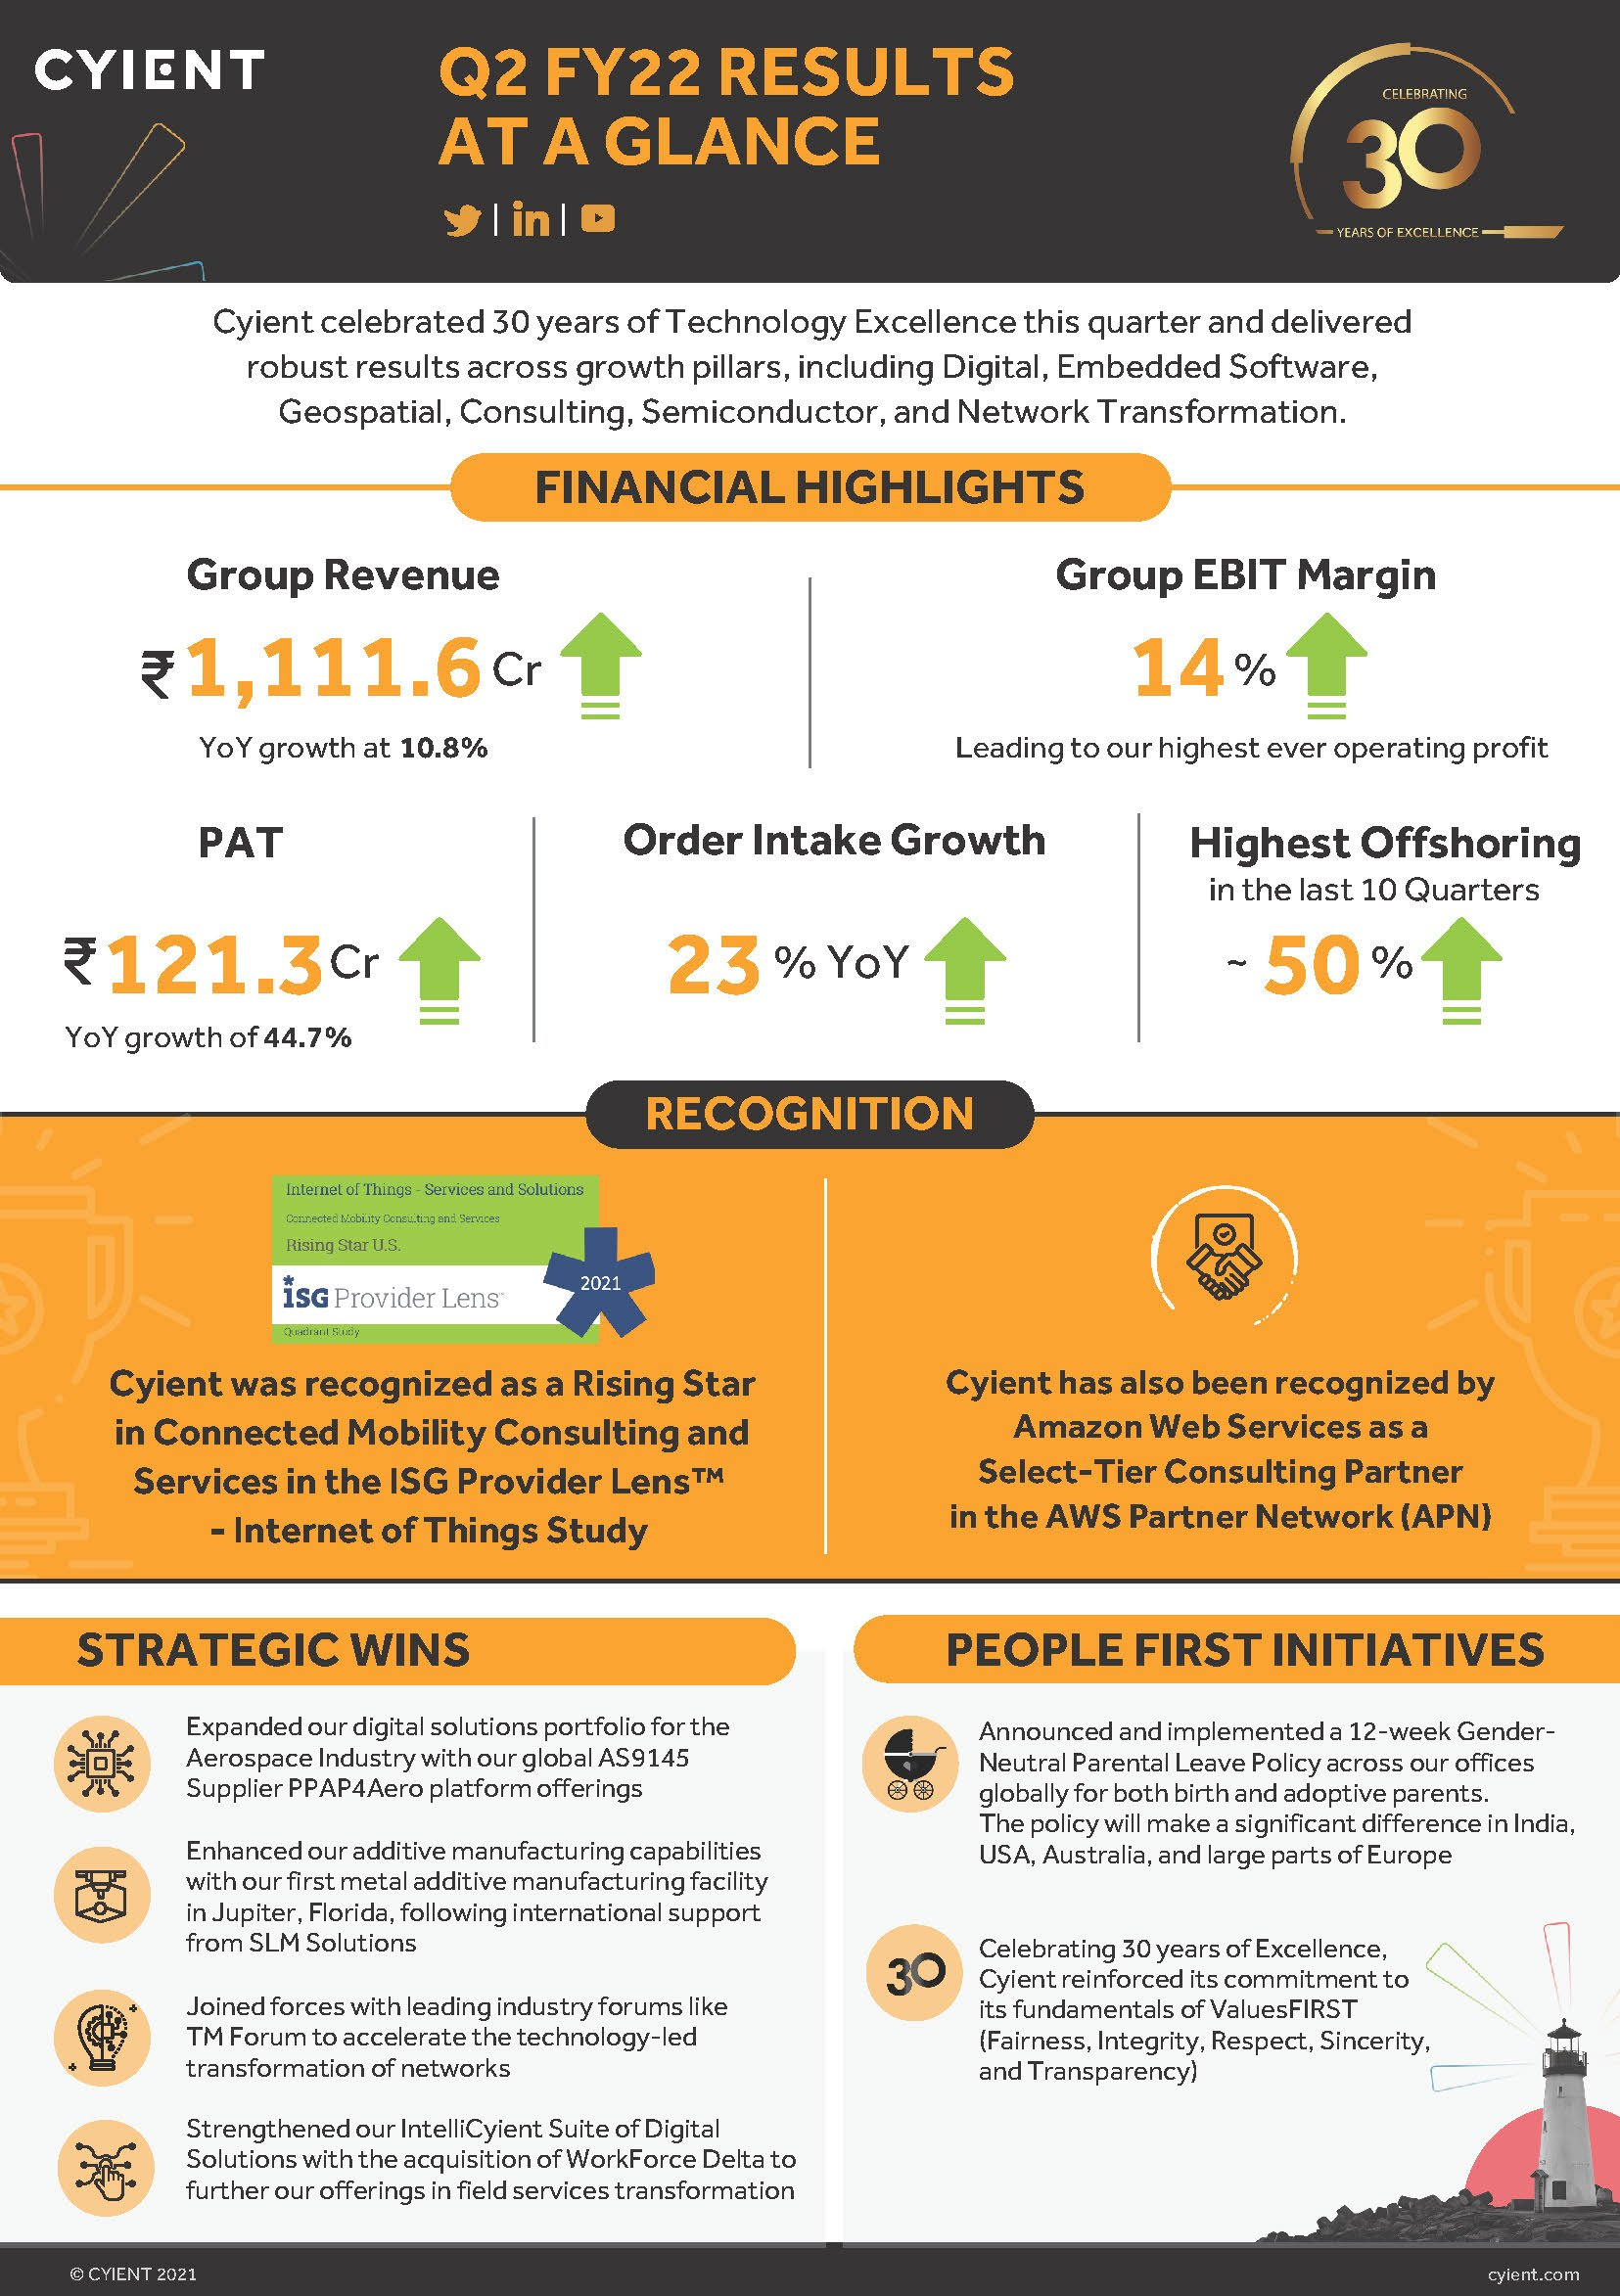 Cyient Q2 FY 22 Results - Key Highlights Infographic